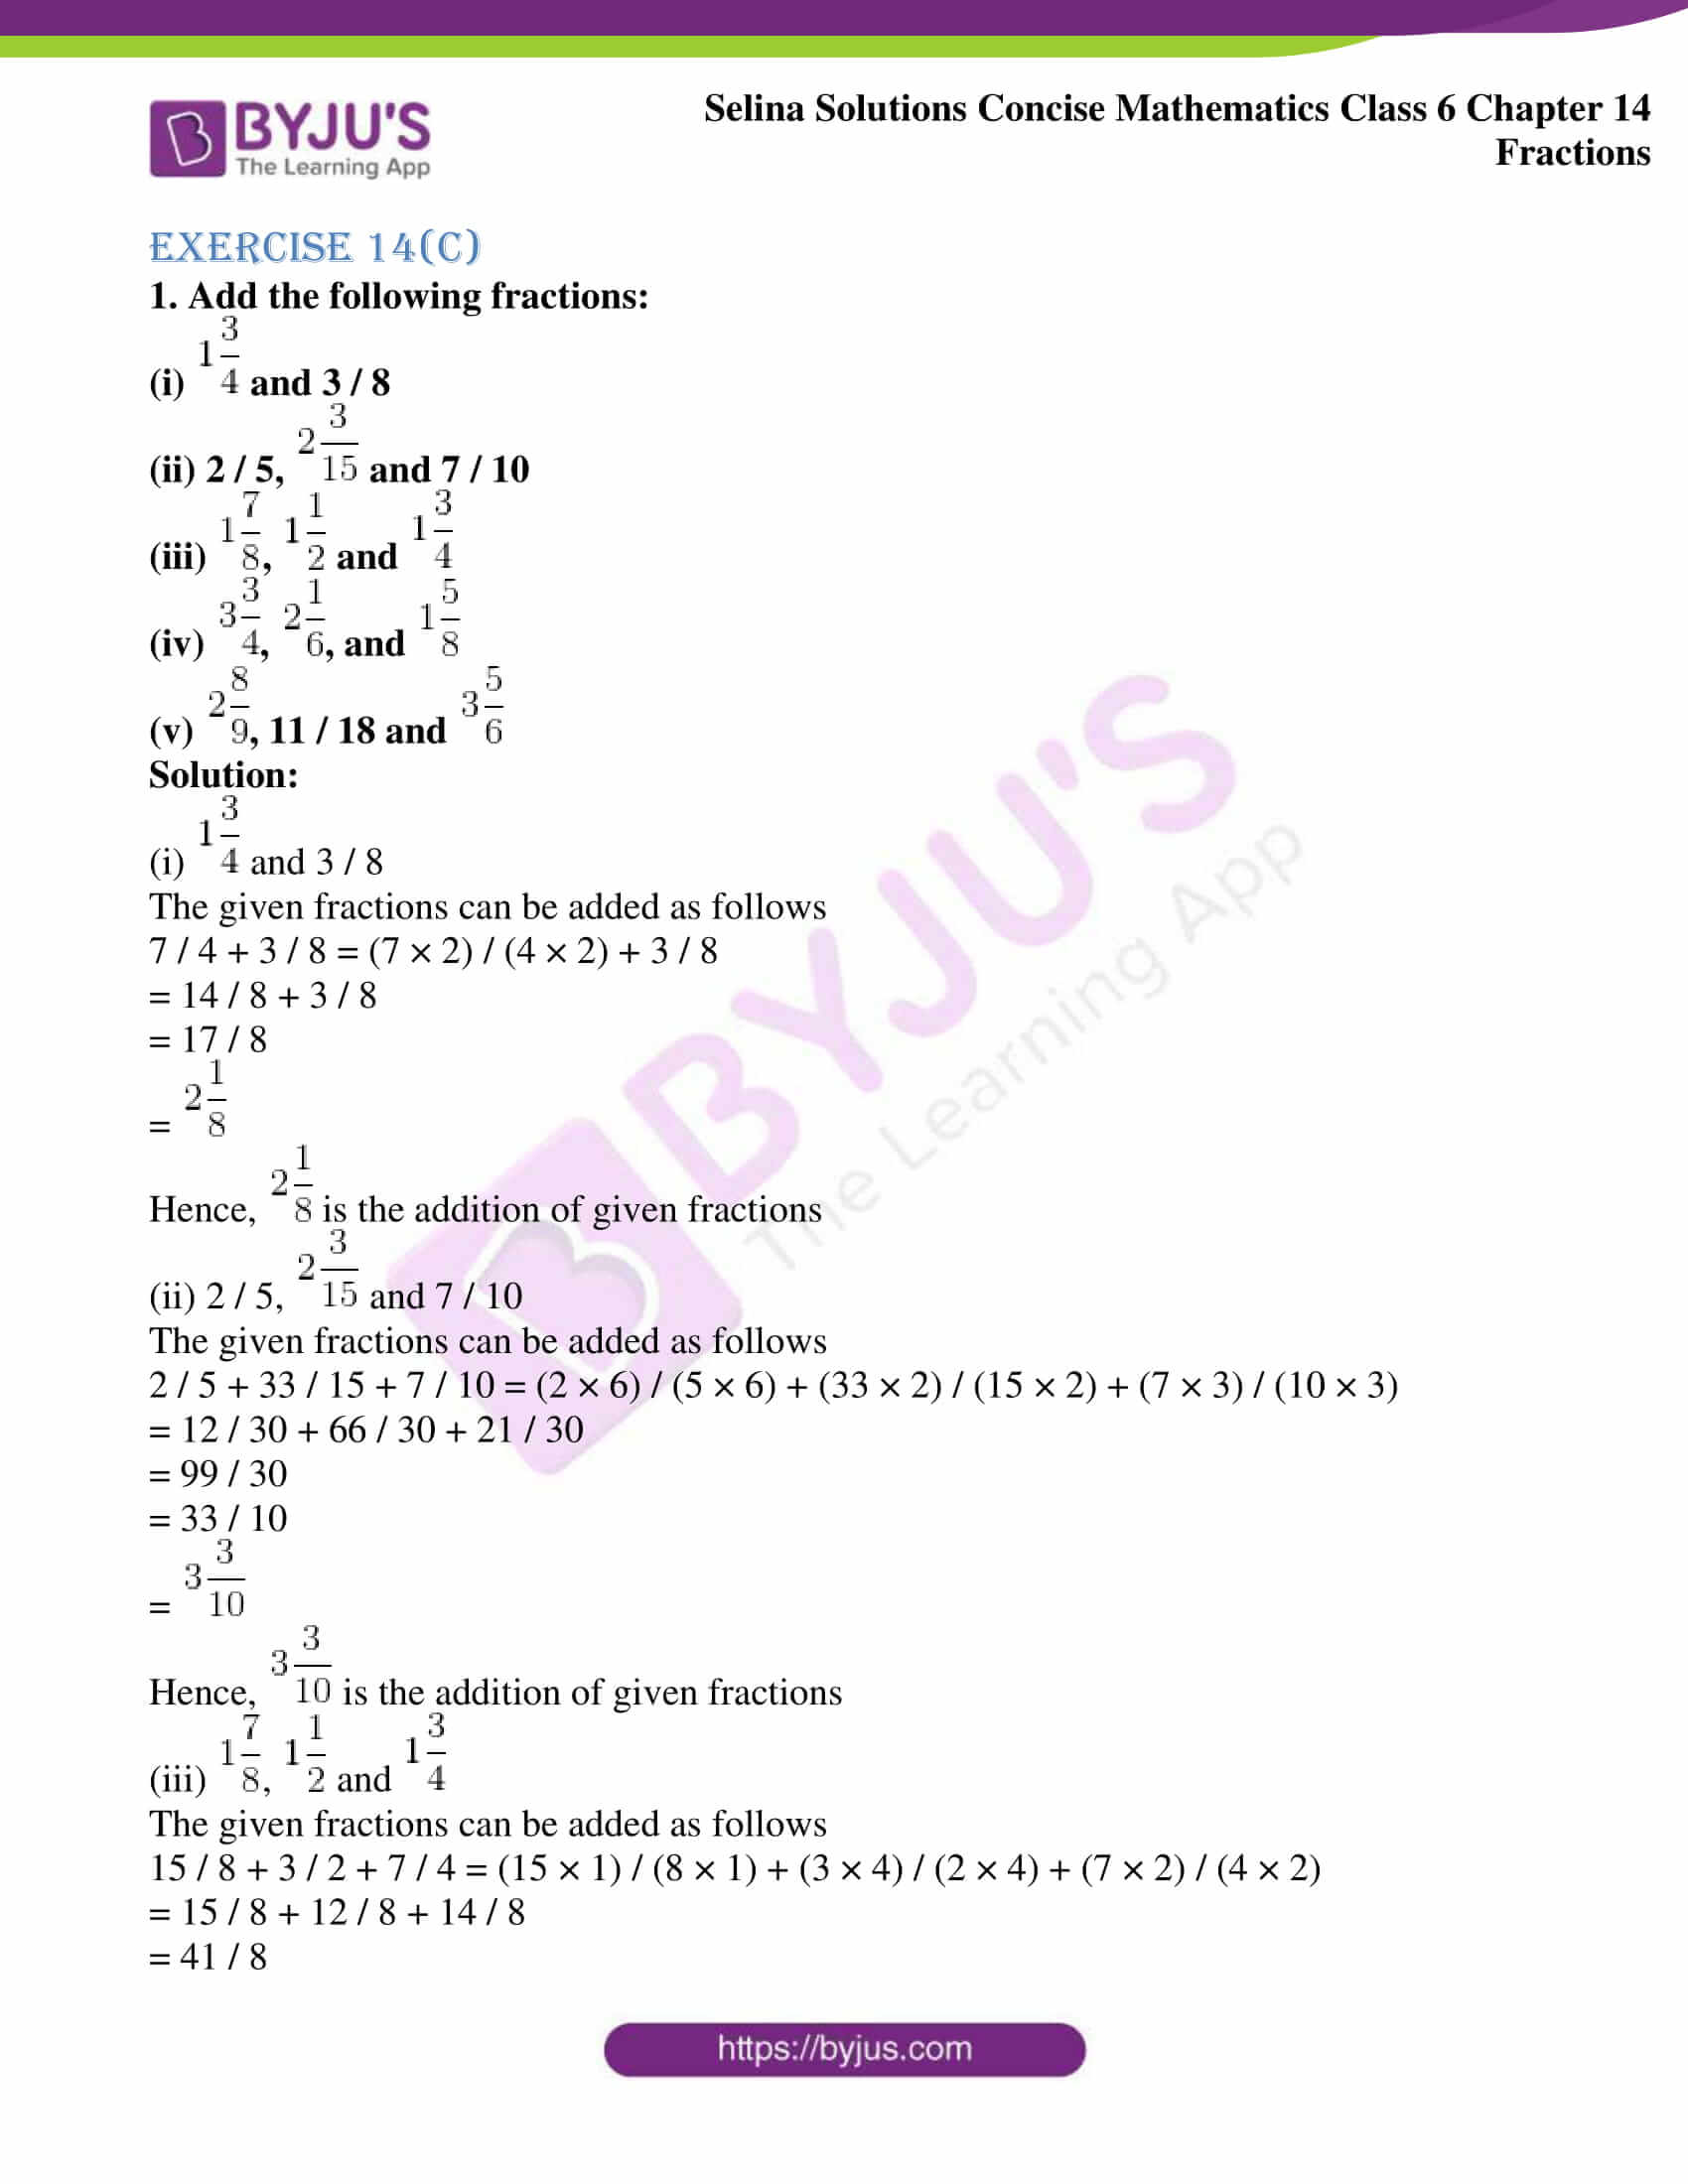 selina solution concise maths class 6 chapter 14 ex c 1